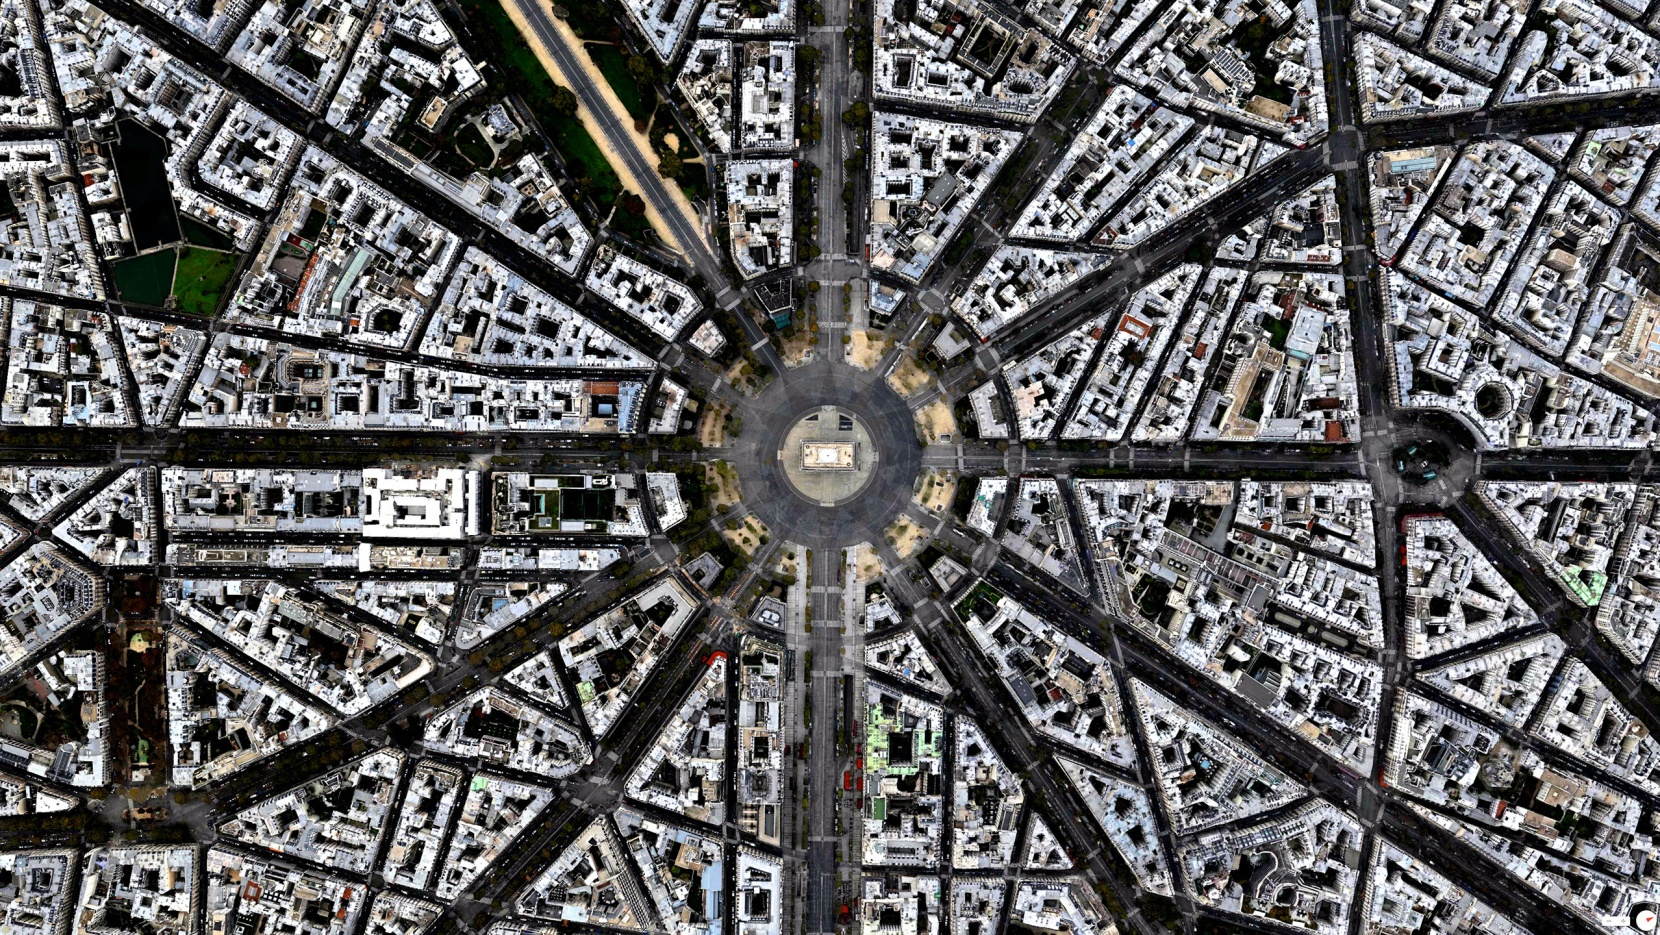 Daily Overview: Captivating Satellite Images of Earth | Yatzer on topographic map of paris france, online map of paris france, detailed map of paris france, road map of paris france, mapquest paris france, satellite view of paris france, physical map of paris france,